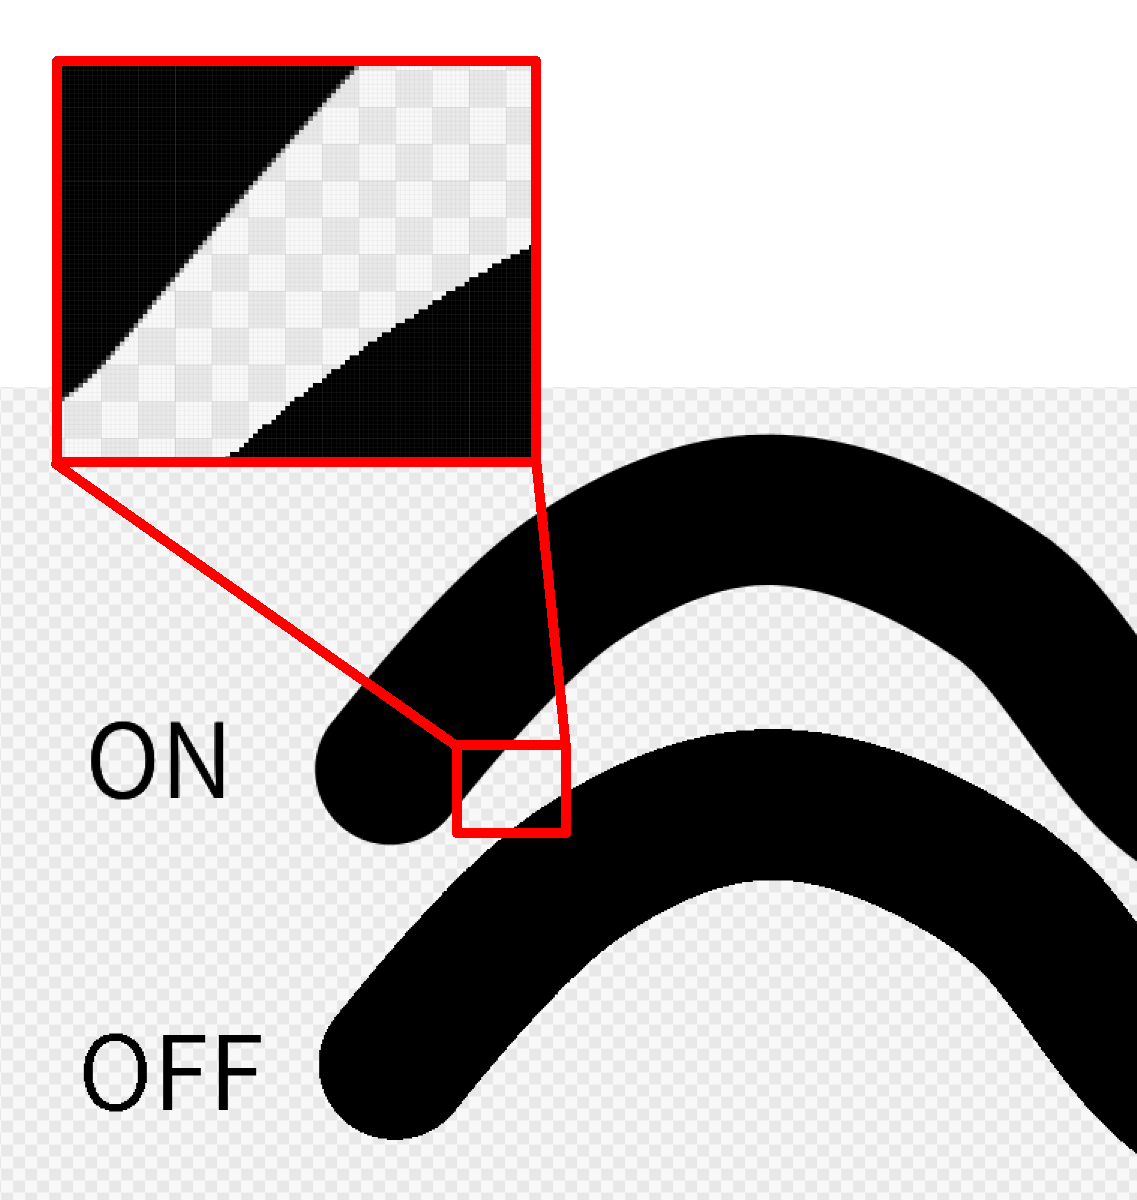 Line difference due to anti-aliasing presence / absence